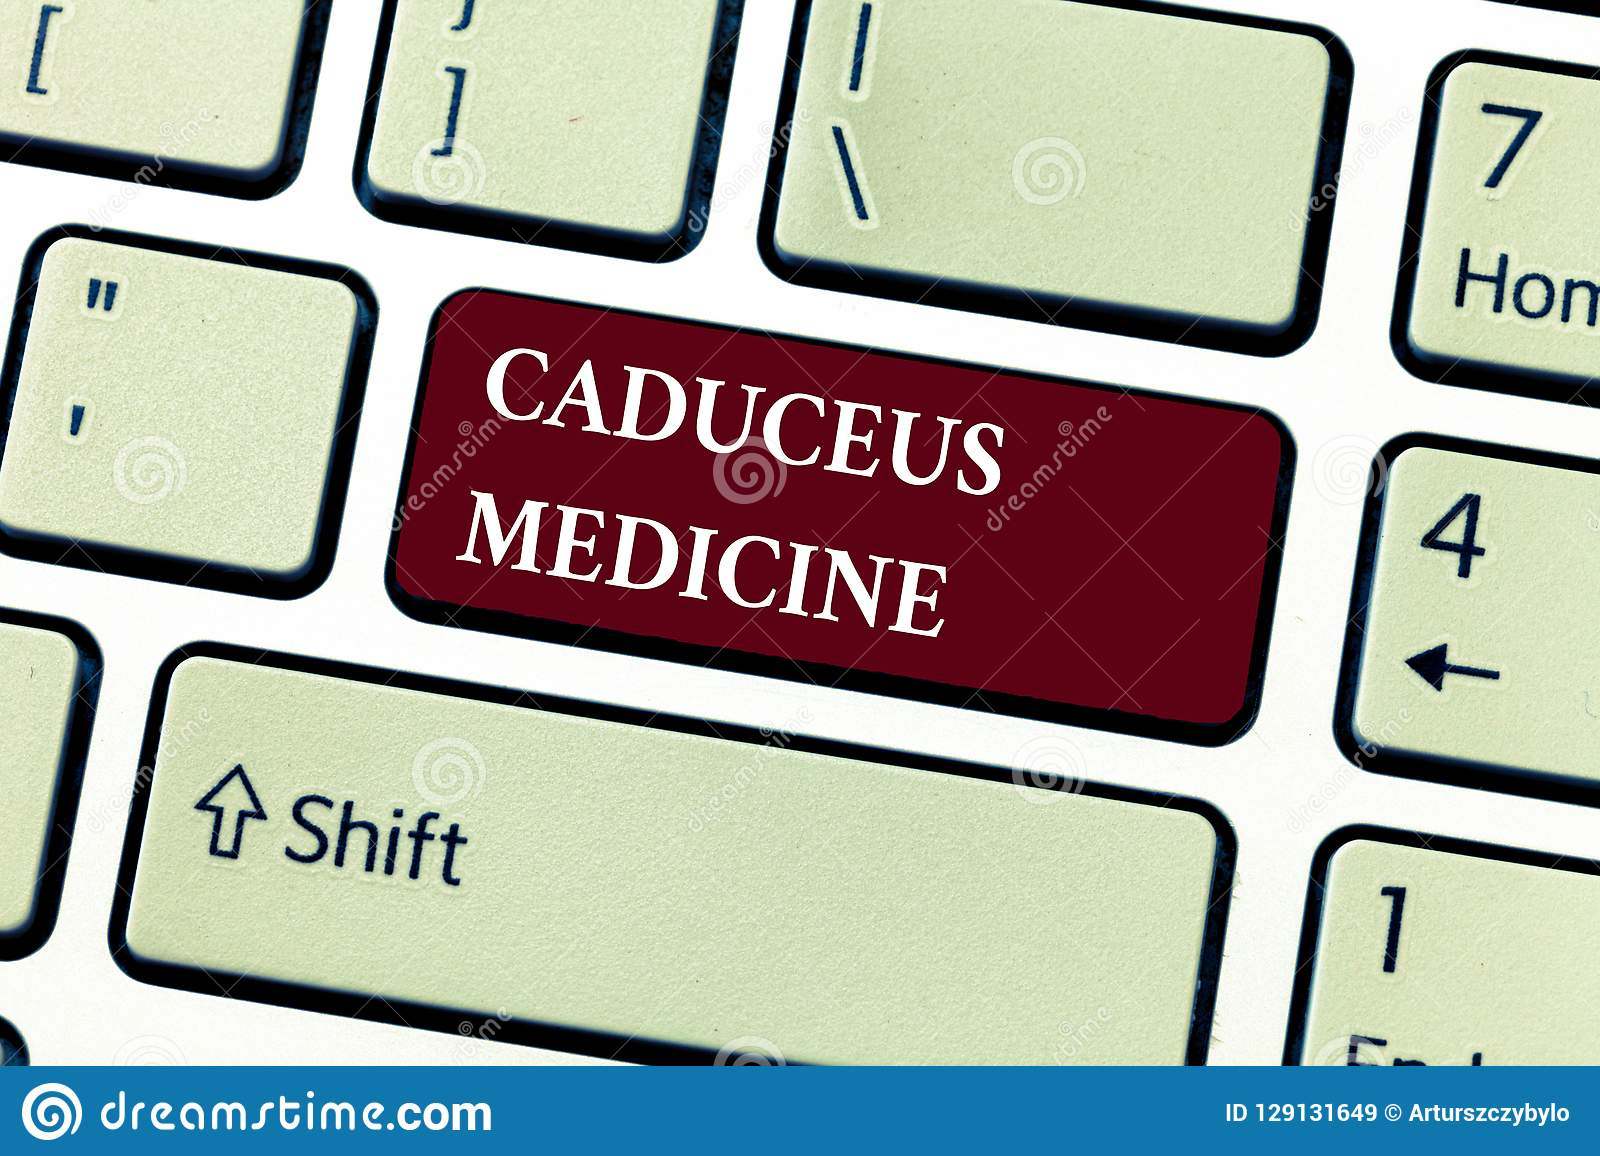 Text sign showing Caduceus Medicine. Conceptual photo symbol used in medicine instead of the Rod of Asclepius